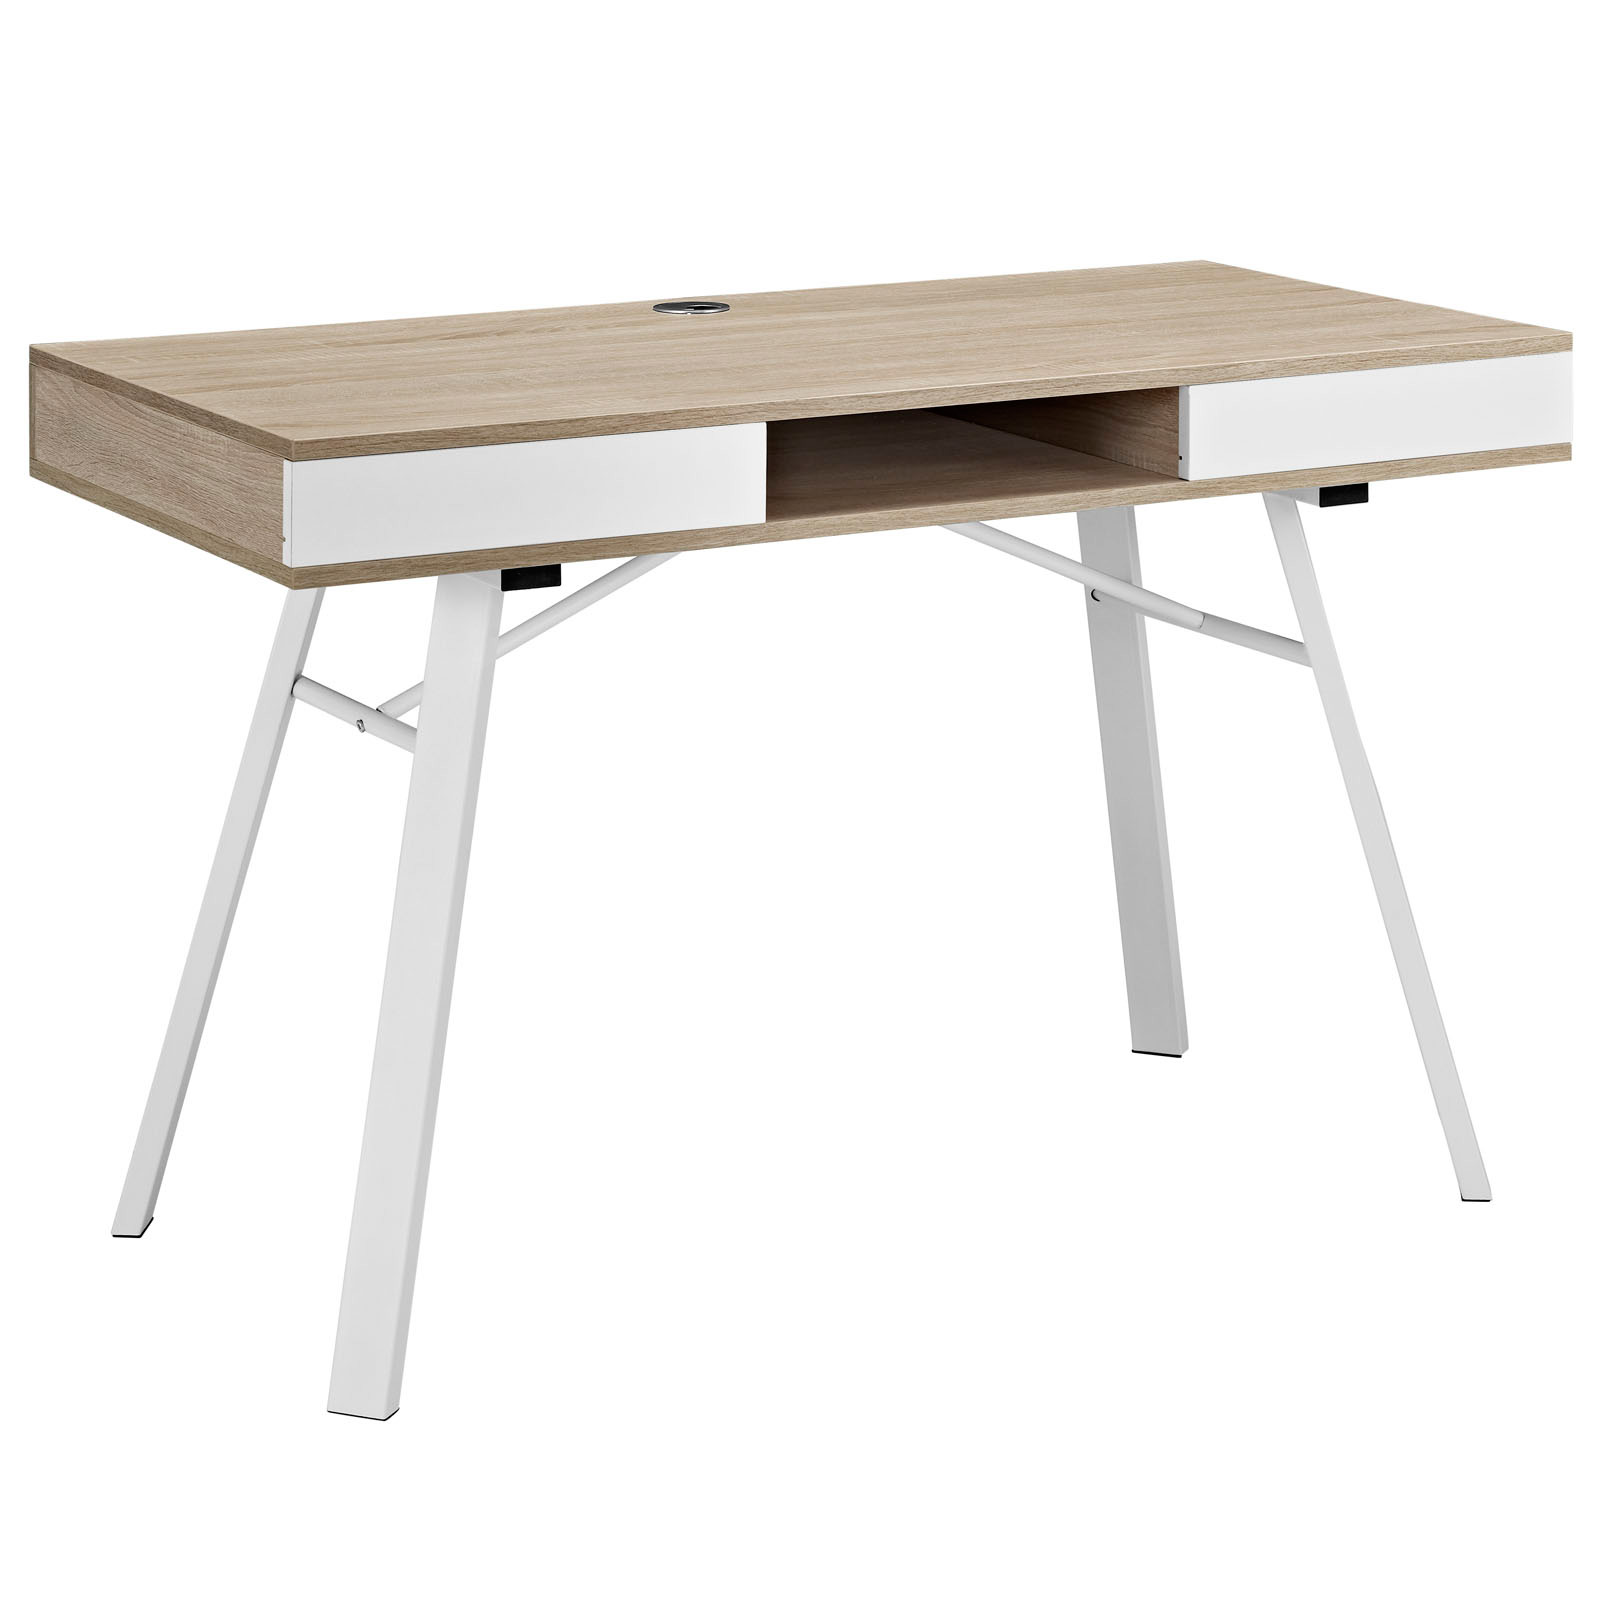 space saving desk from modway shown in oak beige - Space Saving Desk